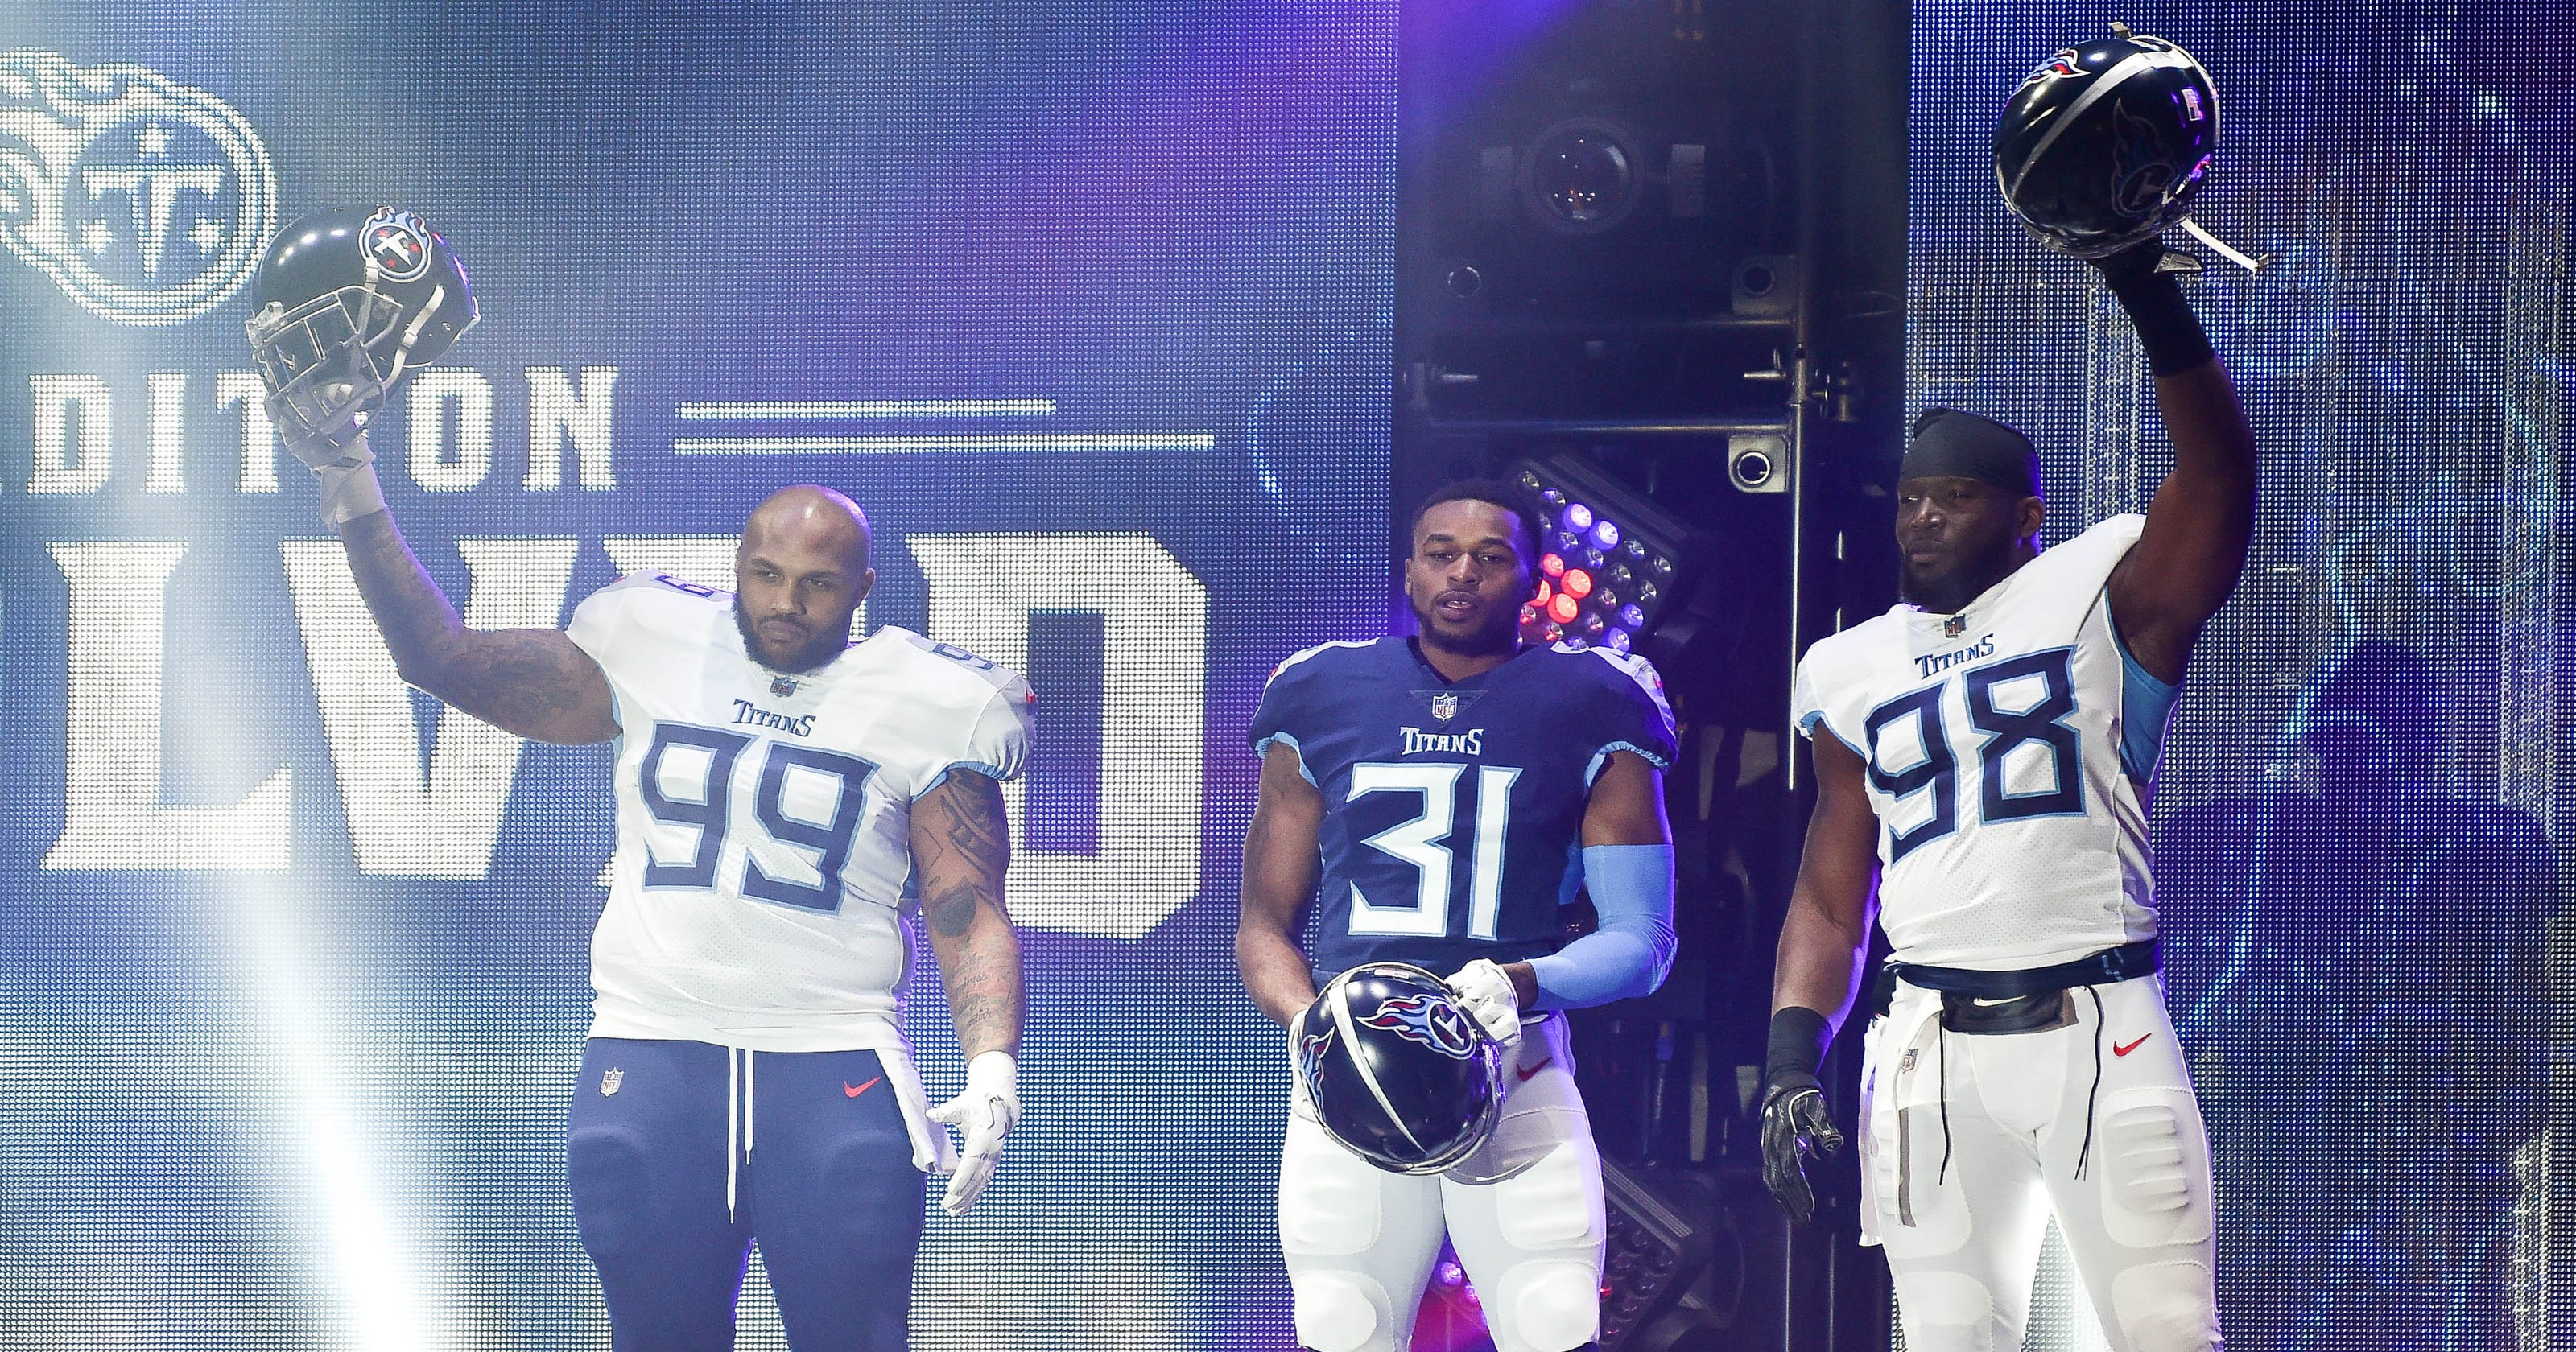 eb1c1d596c76 Titans uniforms unveiled during street party on Broadway